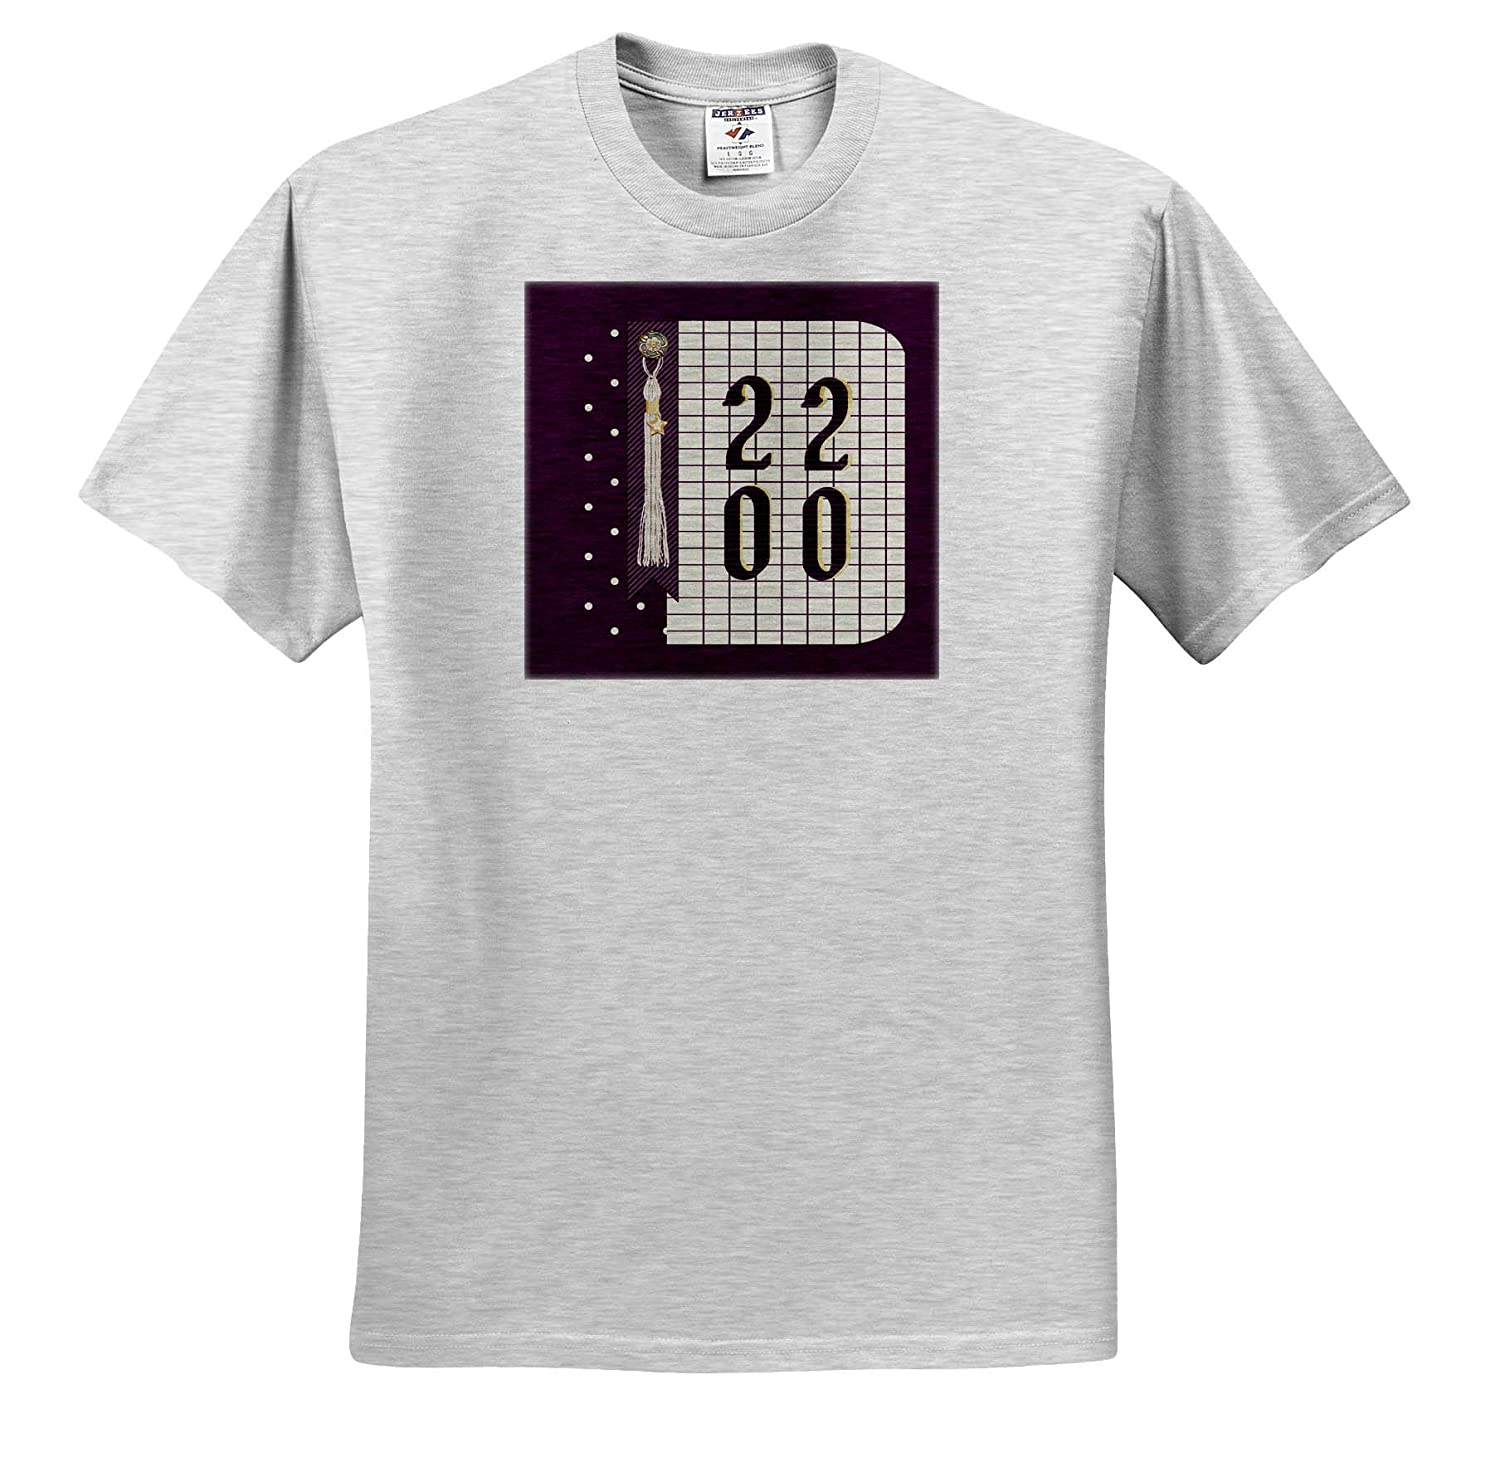 Graph Paper and Purple Image of 2020 Graduation Tassel with Star T-Shirts 3dRose Beverly Turner Graduation Design